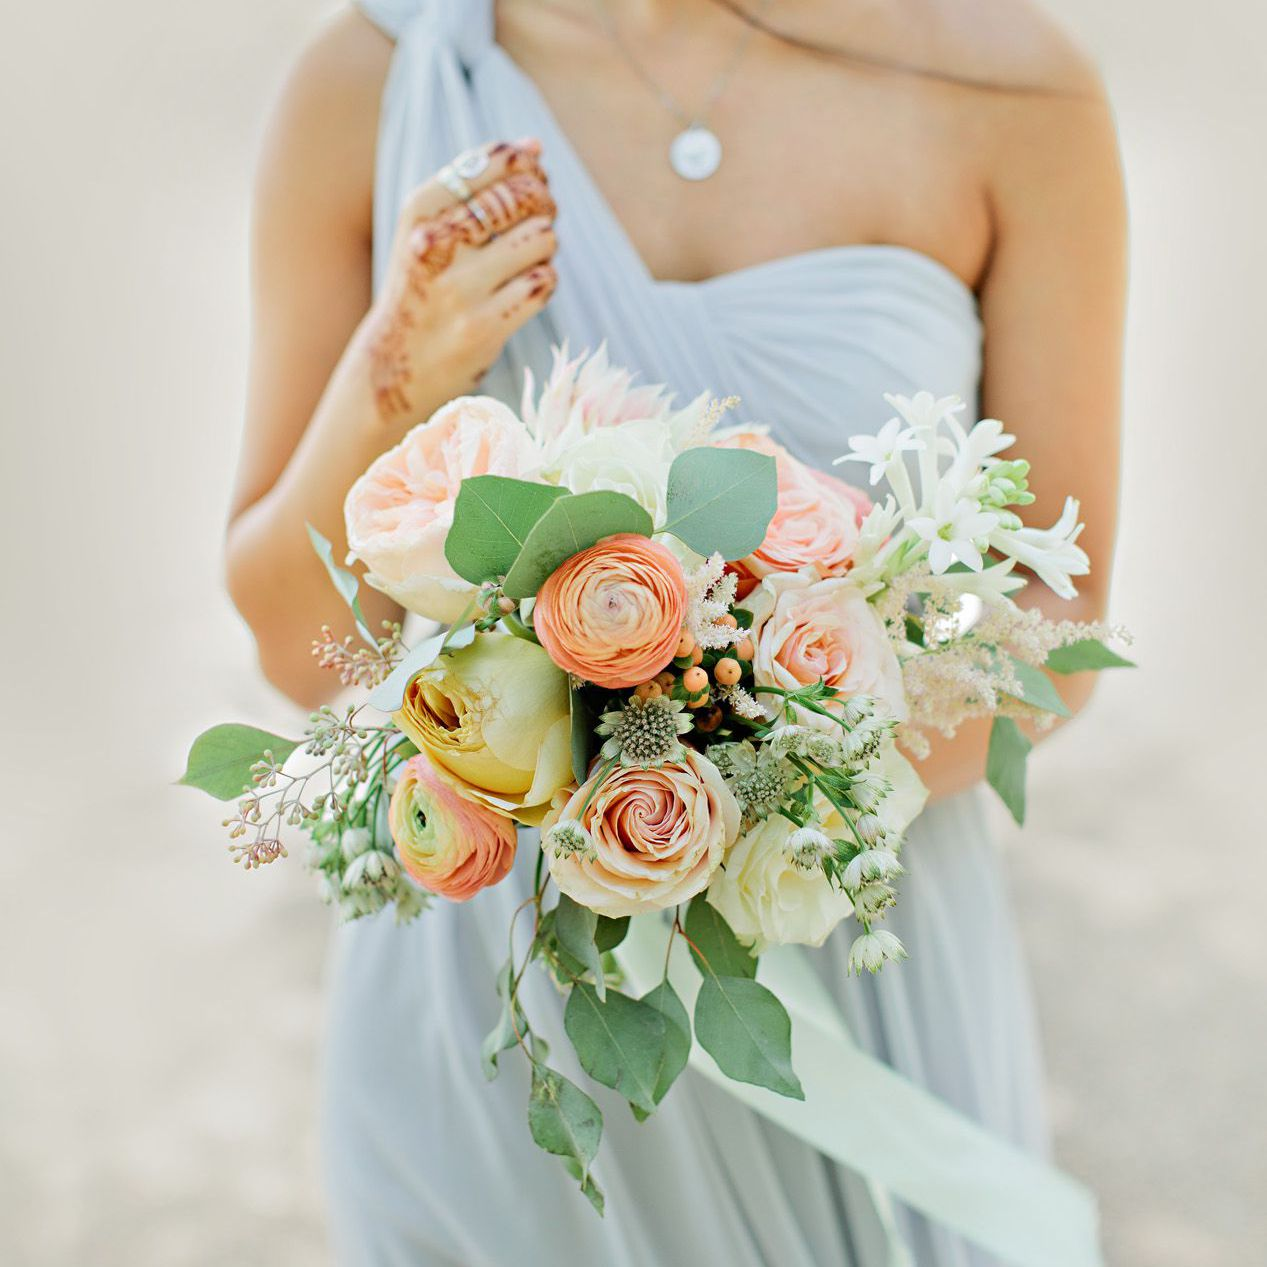 Bride holding a bouquet with pink and orange flowers